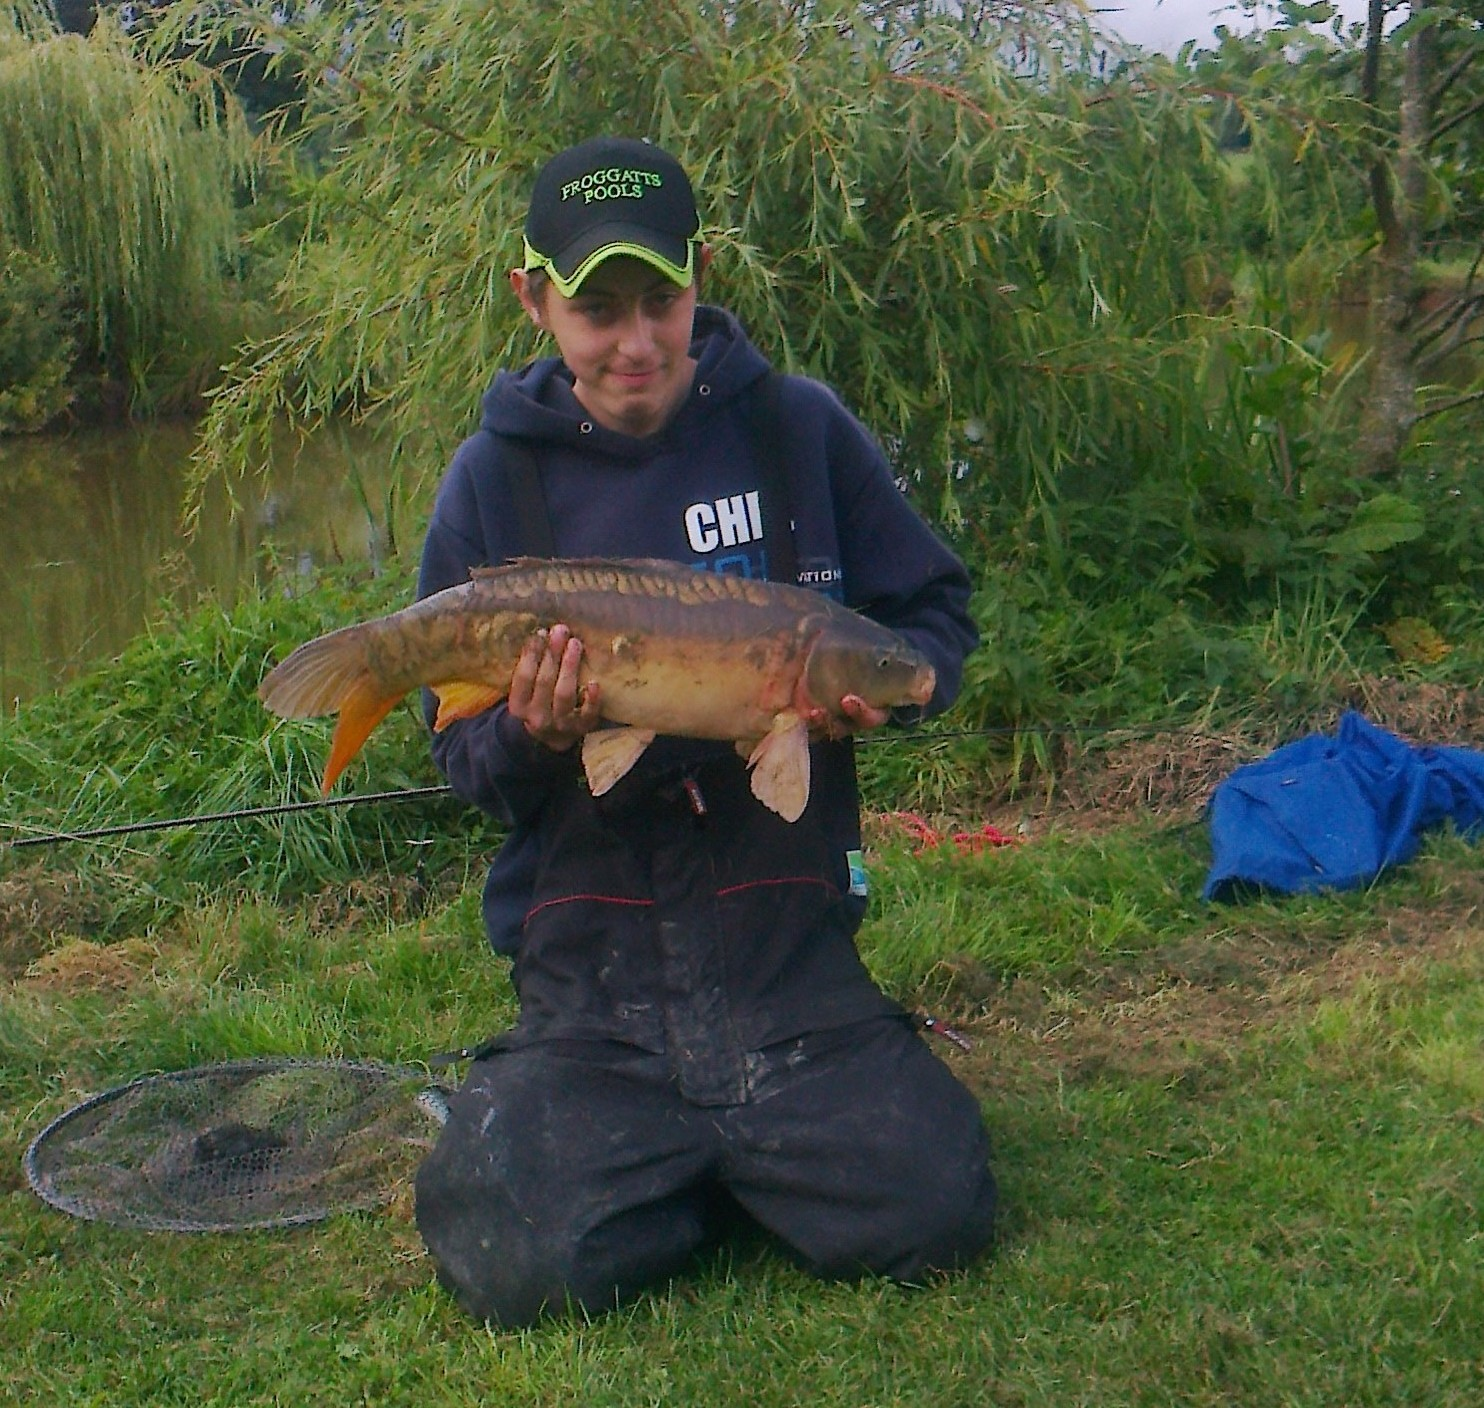 Chester Gardener, from Clee Hill, with his top catch.